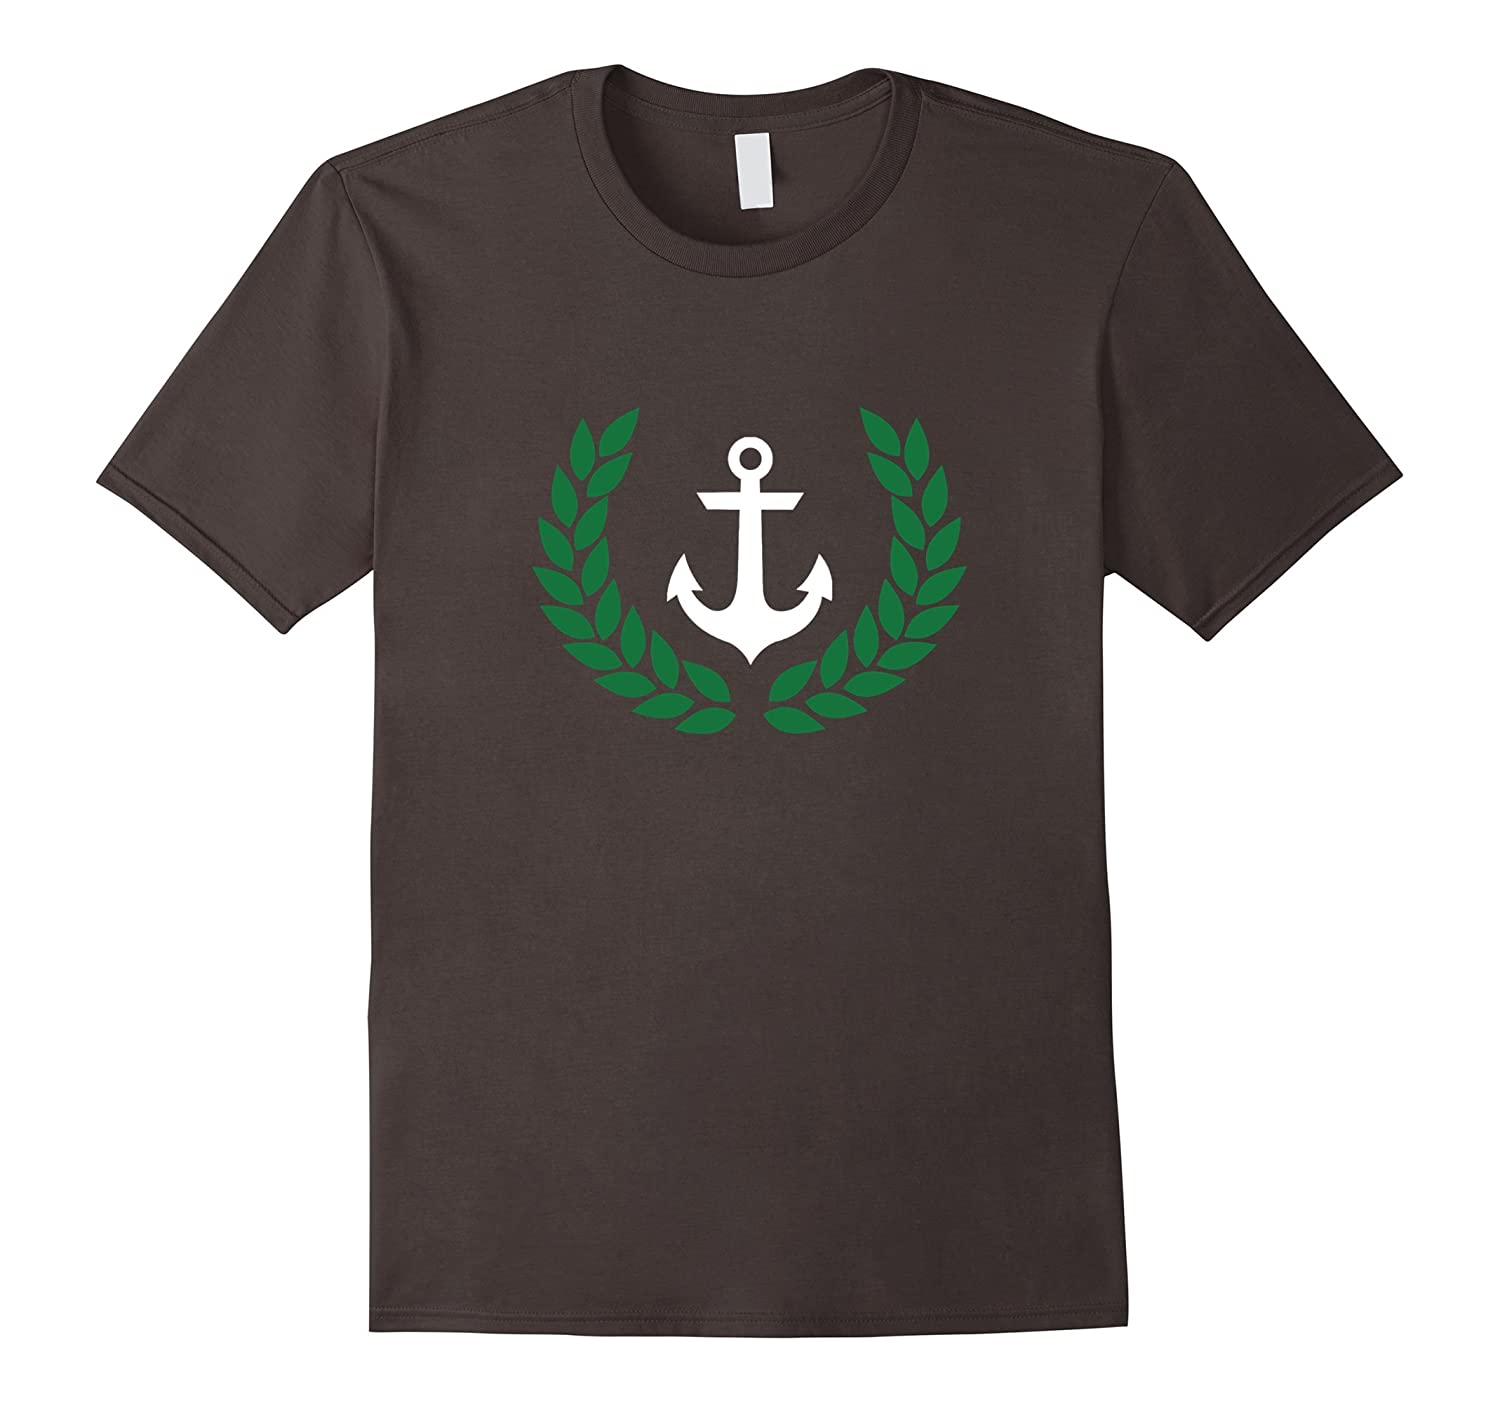 Pablo's Shirt with Anchor and Wreath, Best Seller Tee Shirt-Teevkd